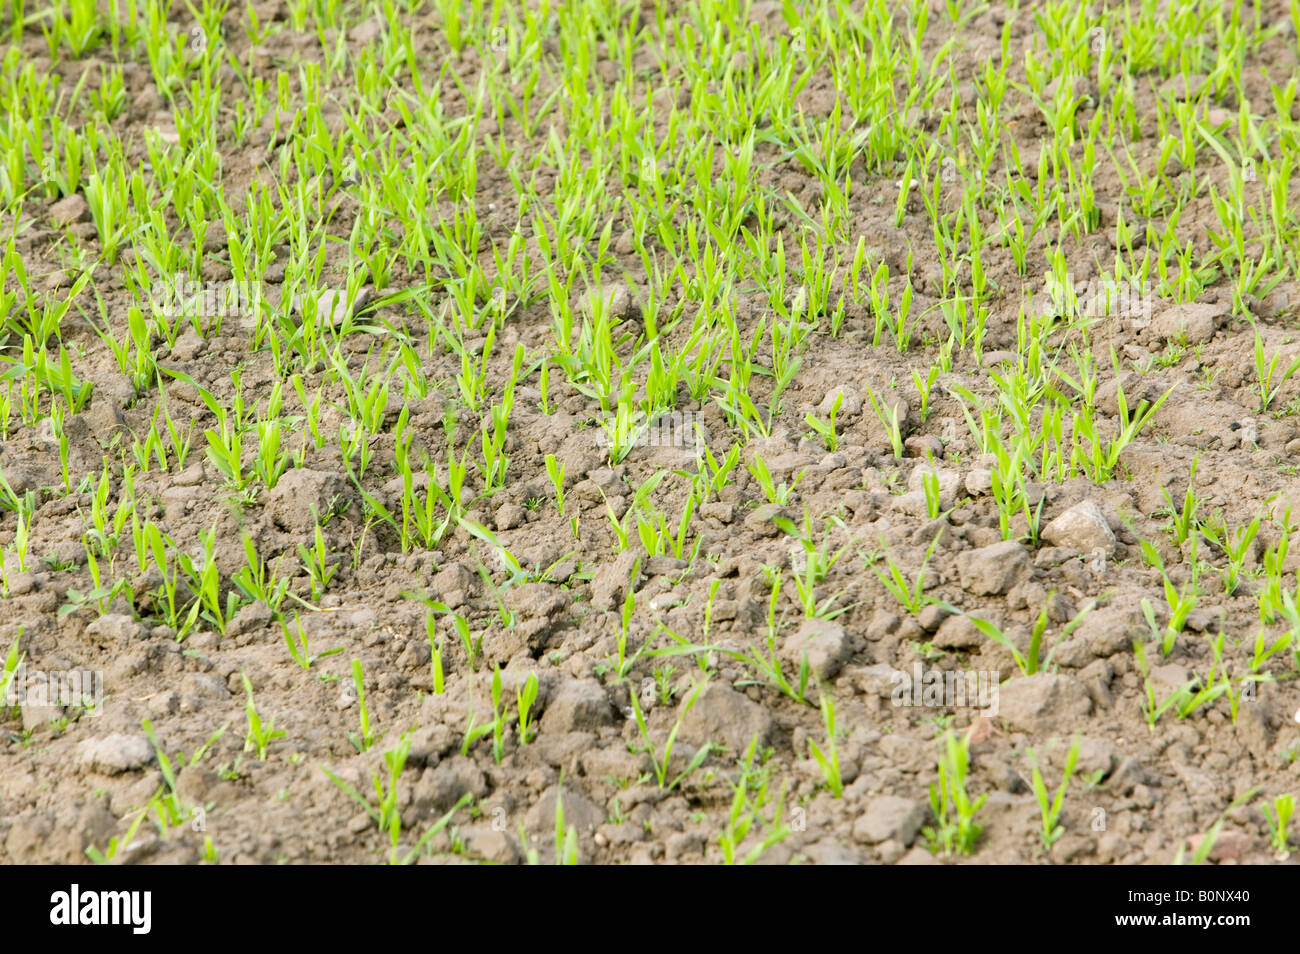 Crops growing in a field in lincolnshire UK Soil stores large quantities of C02 which is released when farmers plough - Stock Image